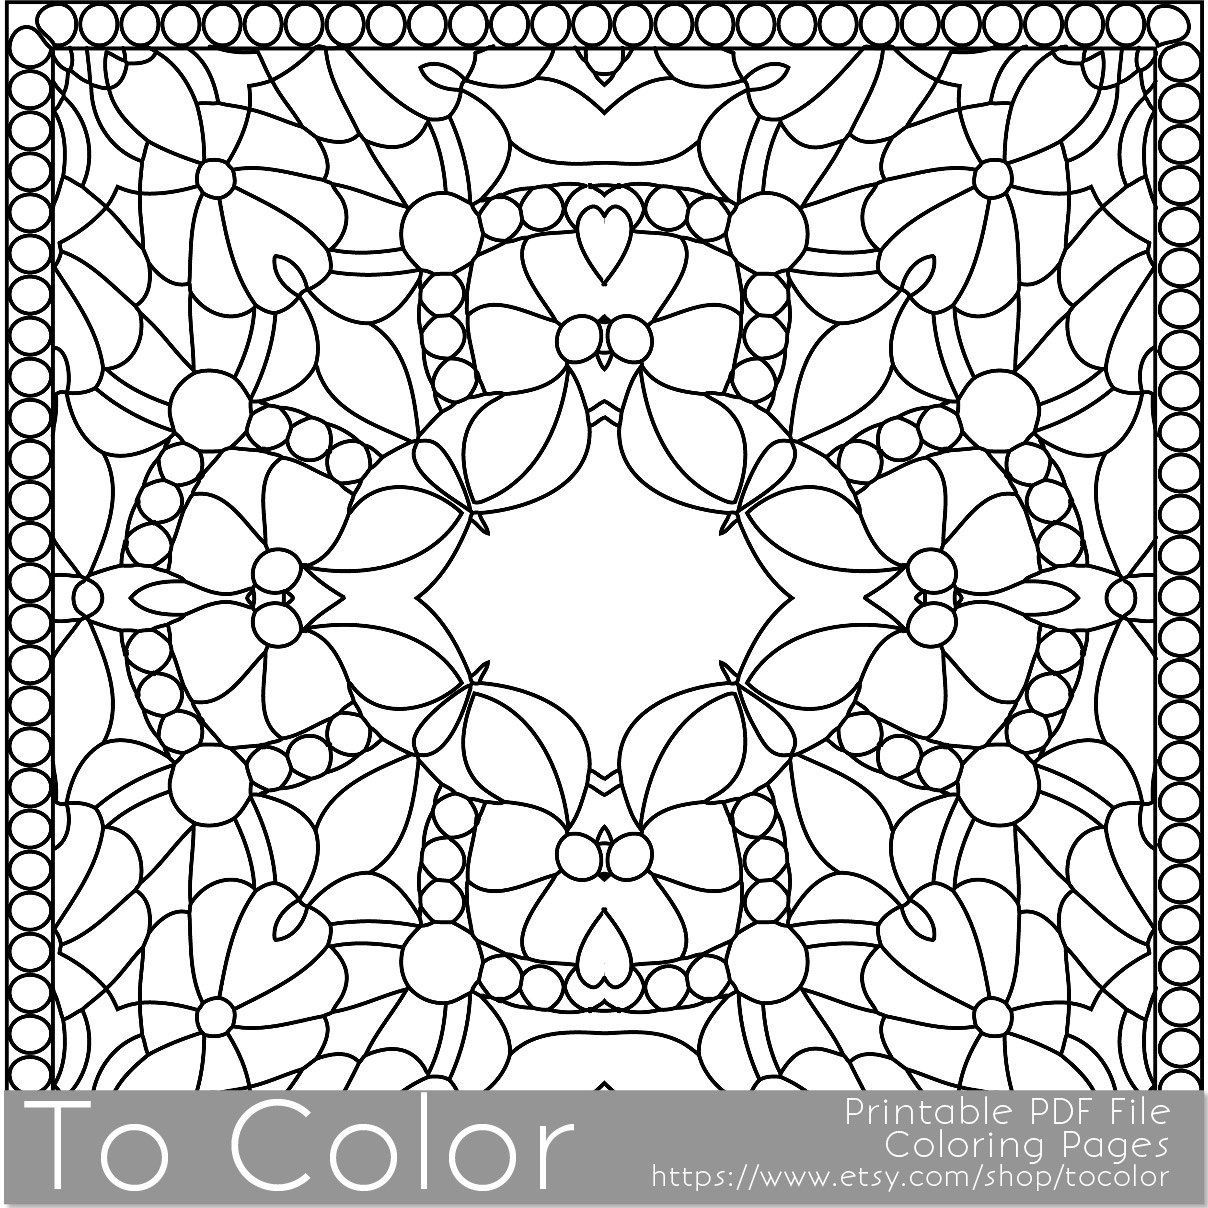 Printable coloring pages for adults square coloring coloring